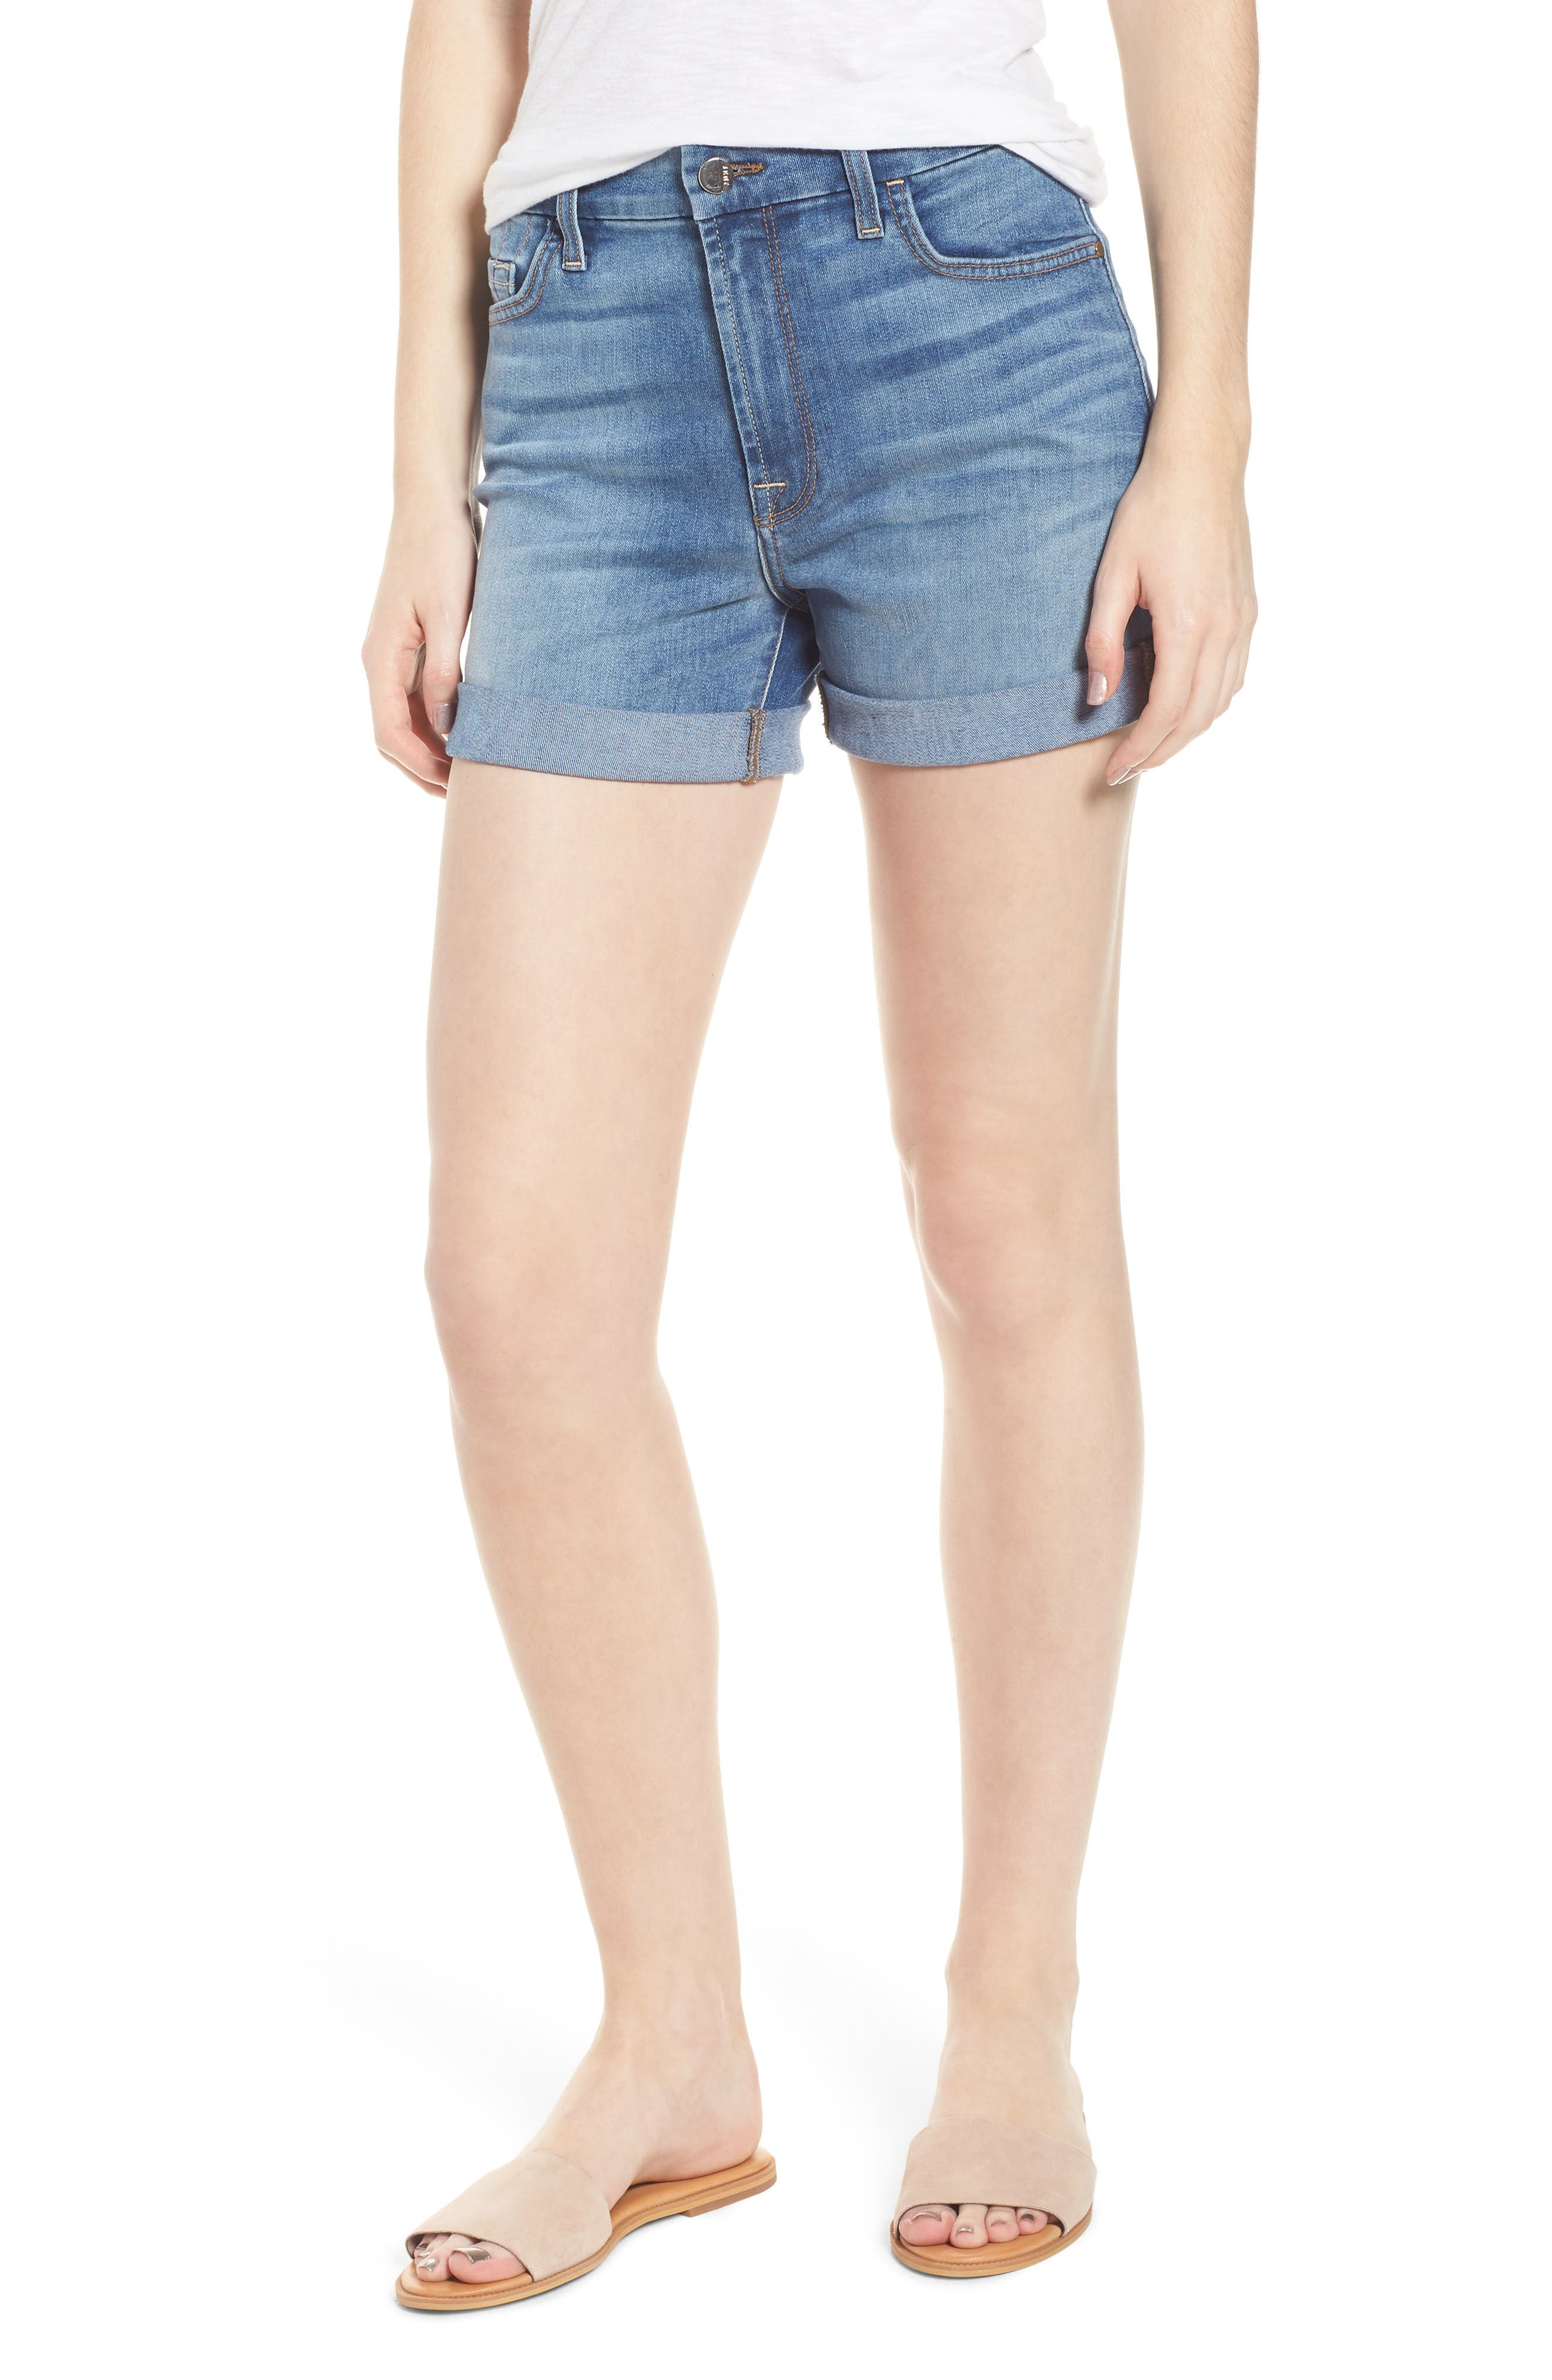 JEN7 Roll Up Denim Shorts in Sunlight